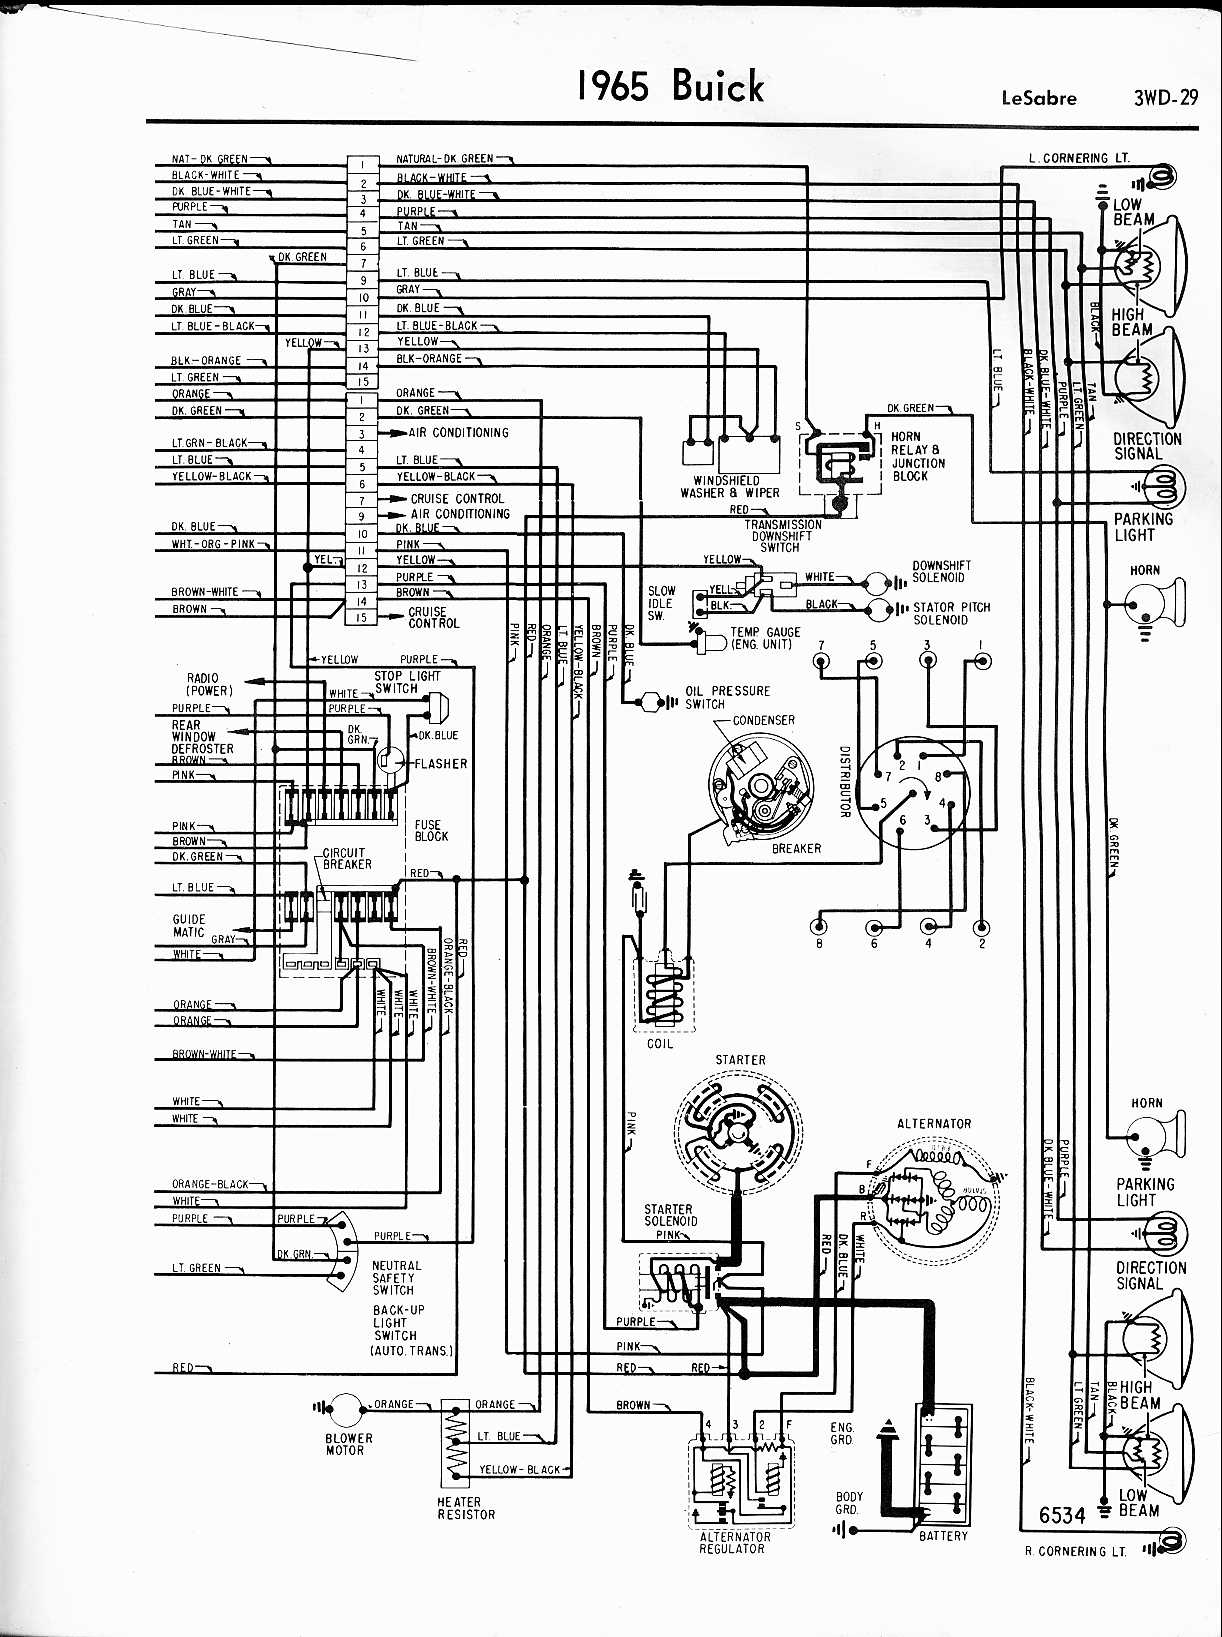 EFC416F 1998 Daewoo Nubira Wiring Diagram | Wiring Resources